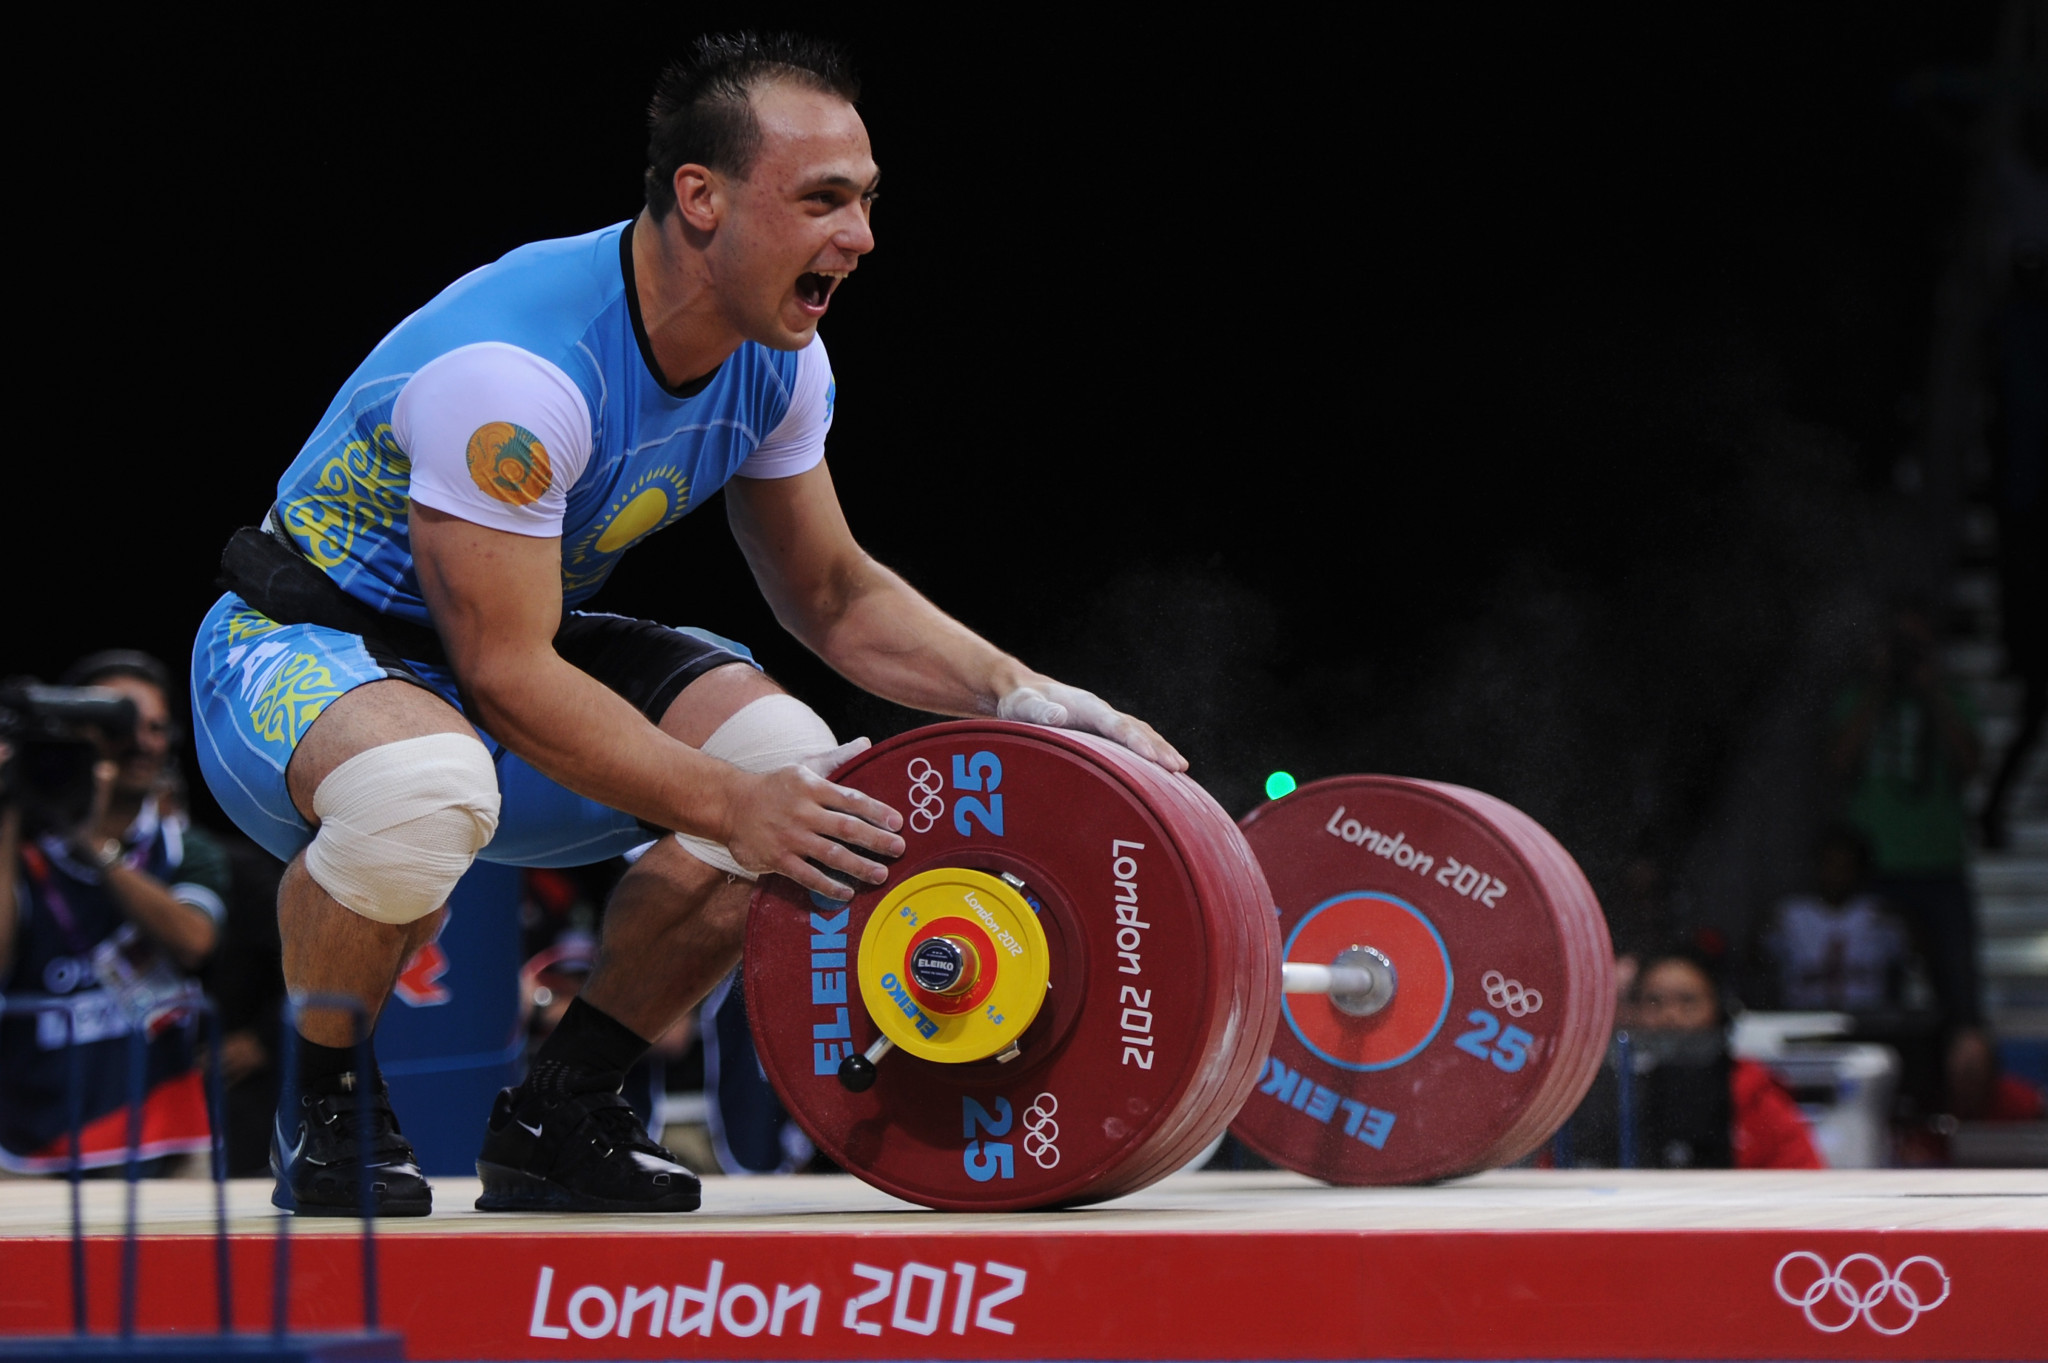 Athletes such as Kazakhstan weightlifter Ilya Ilyin have been stripped of gold medals from Beijing 2008 and London 2012 following re-analysis using new methods enabling longer steroid detection ©Getty Images